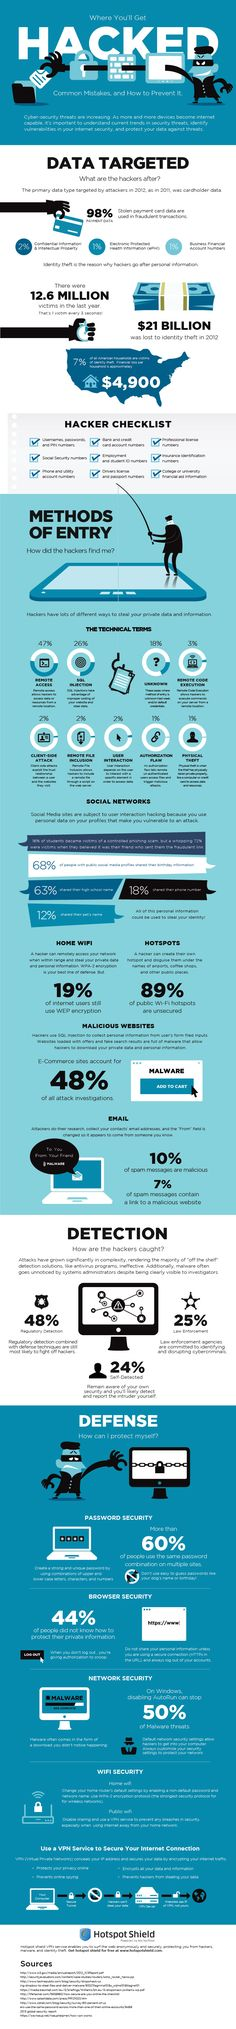 How to Avoid Getting Hacked (Infographic)